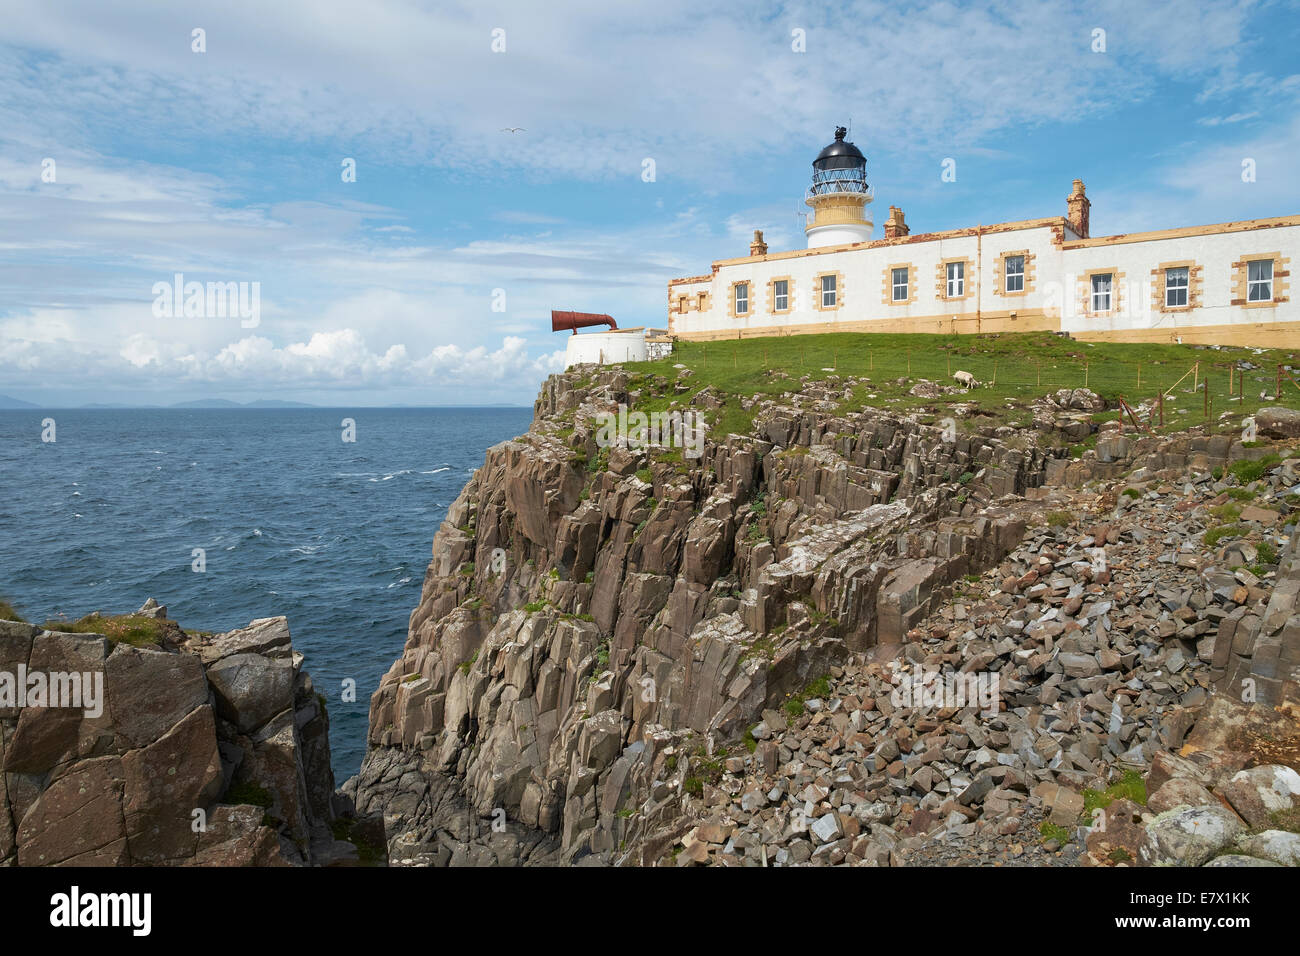 Neist Point Light house on the Isle of Skye, Scottish Highlands, Scotland. - Stock Image